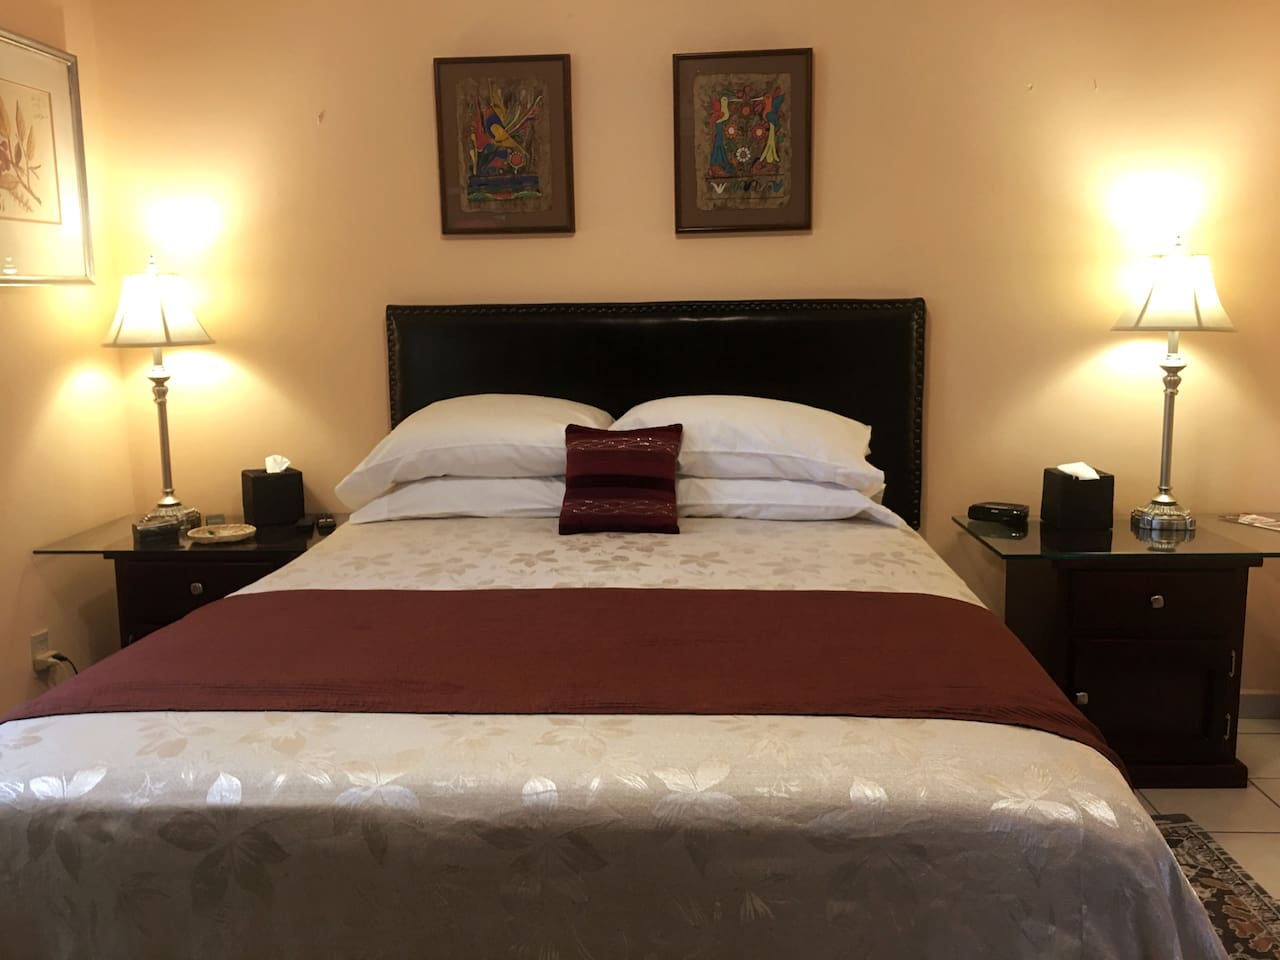 Each bed is offered 4 pillows, offering a choice in firmness and comfort.